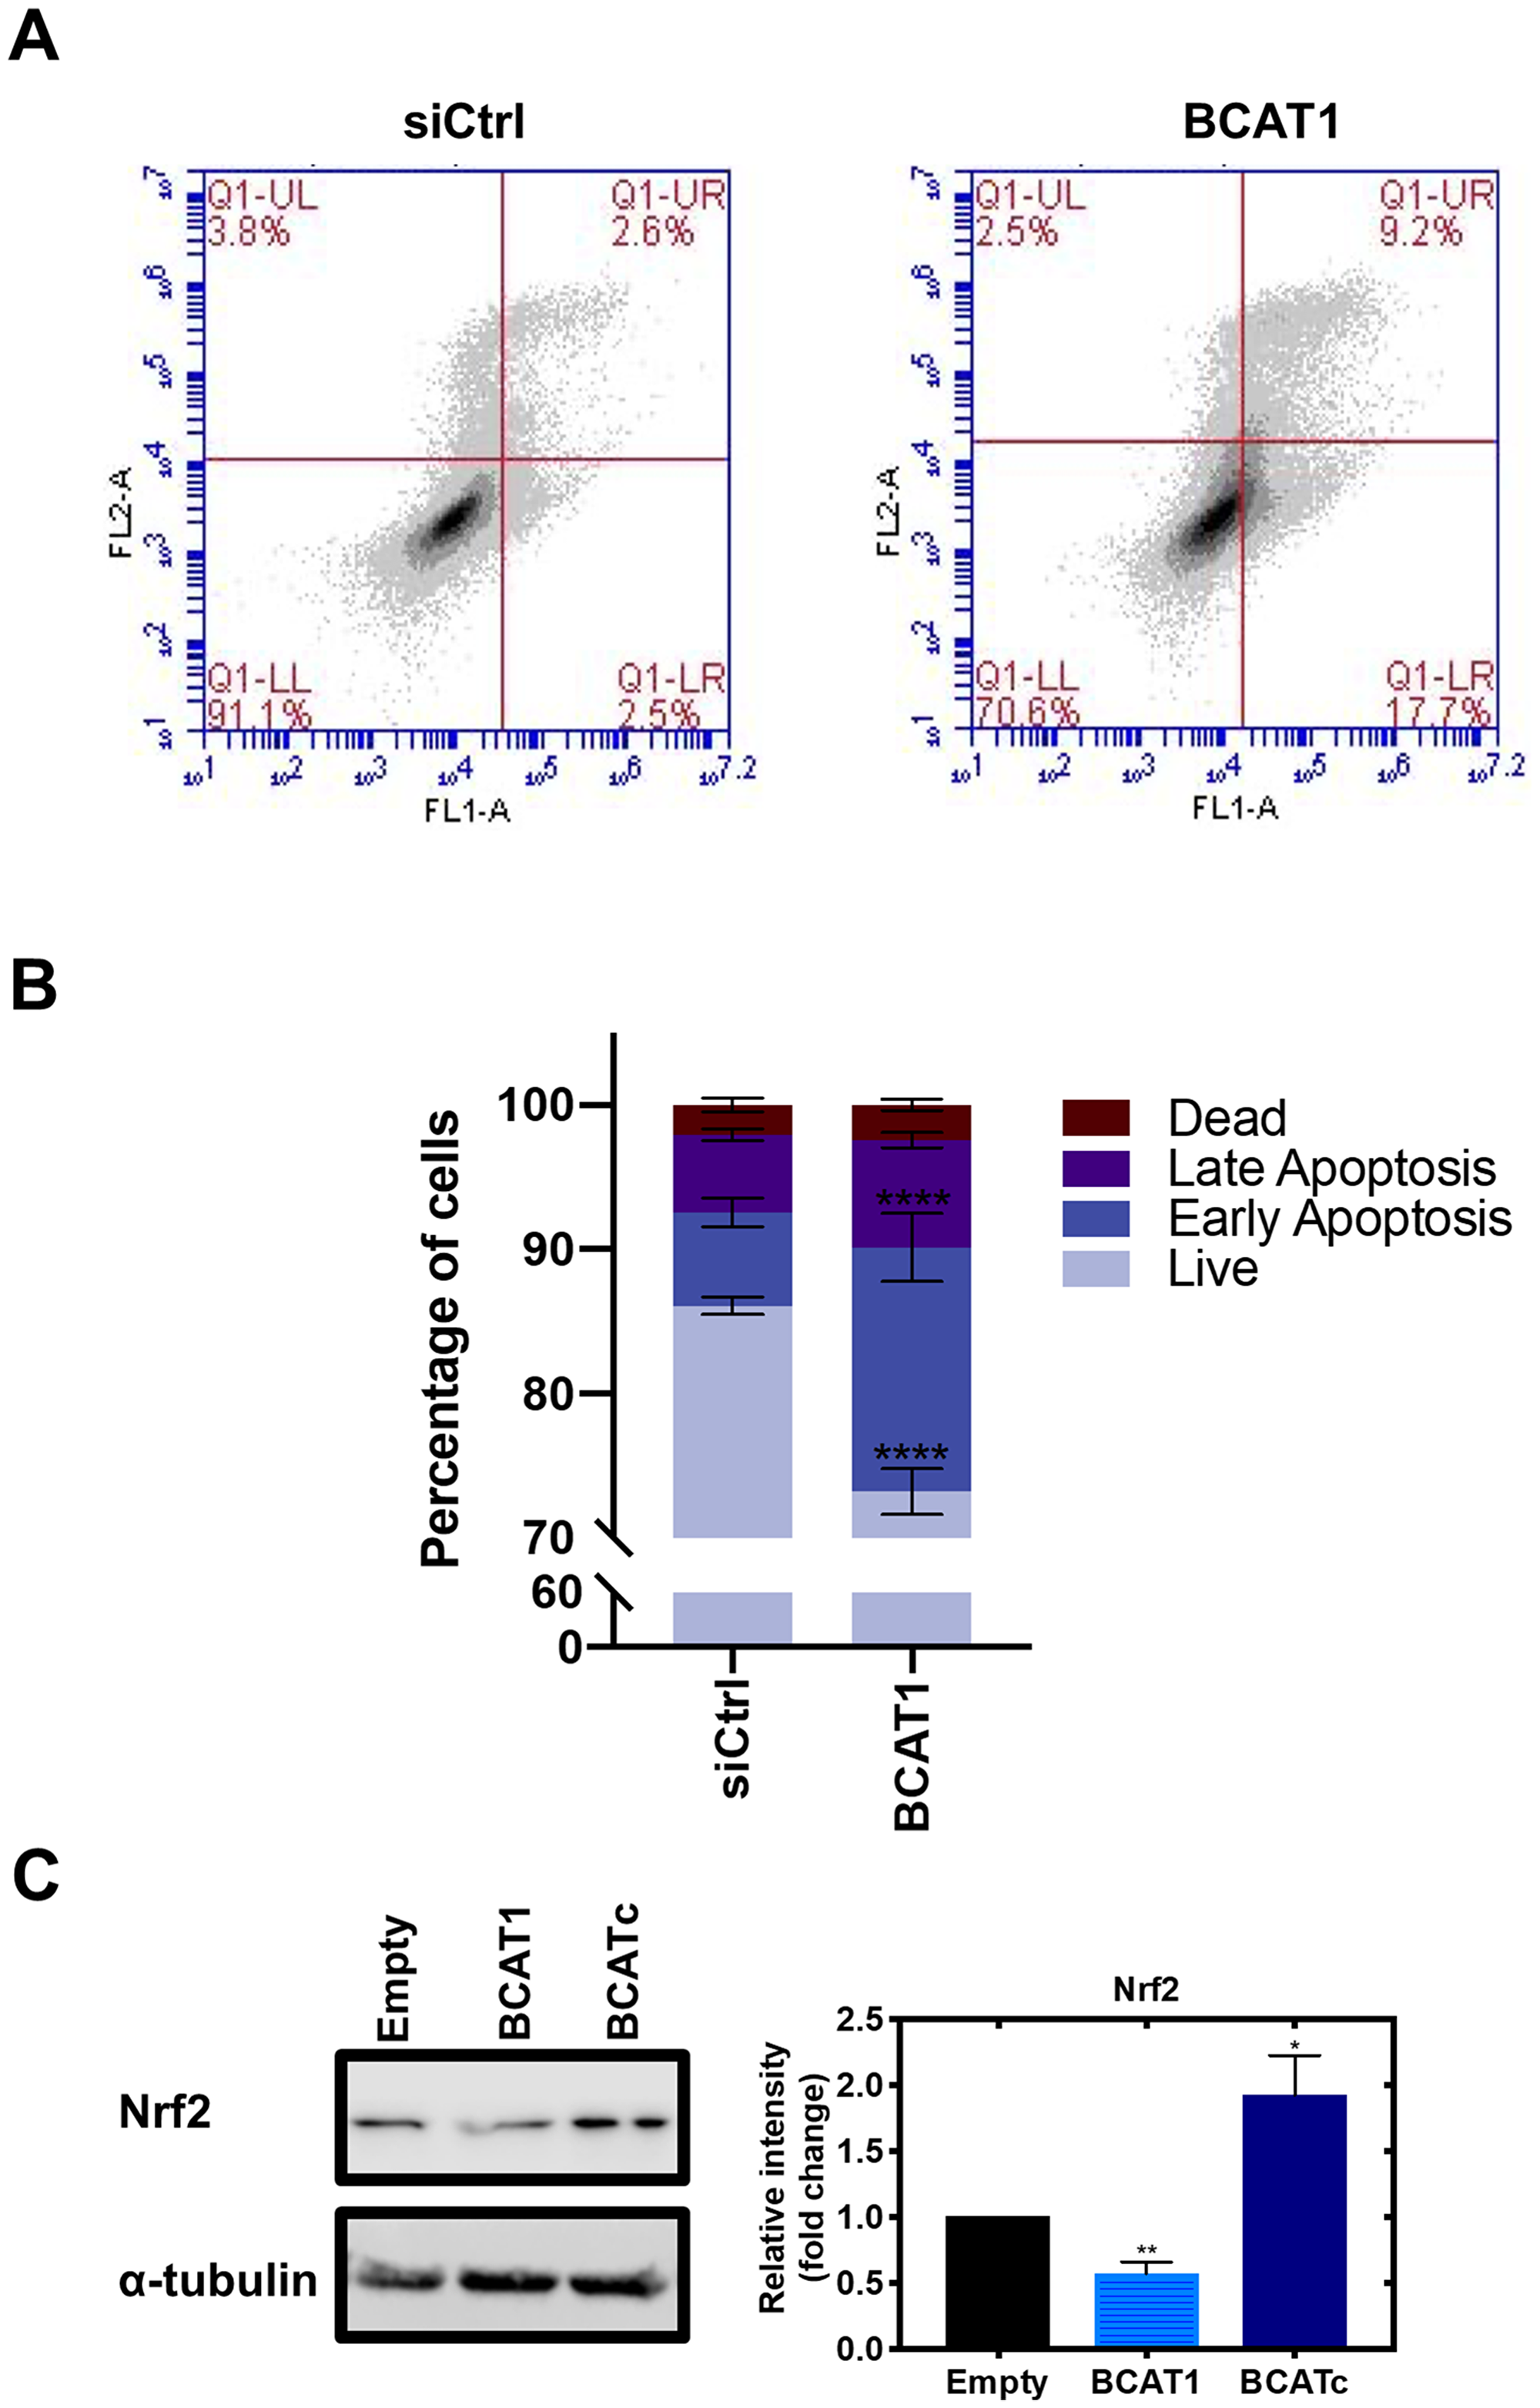 BCAT1 promotes tumour cell survival by evasion of apoptosis.